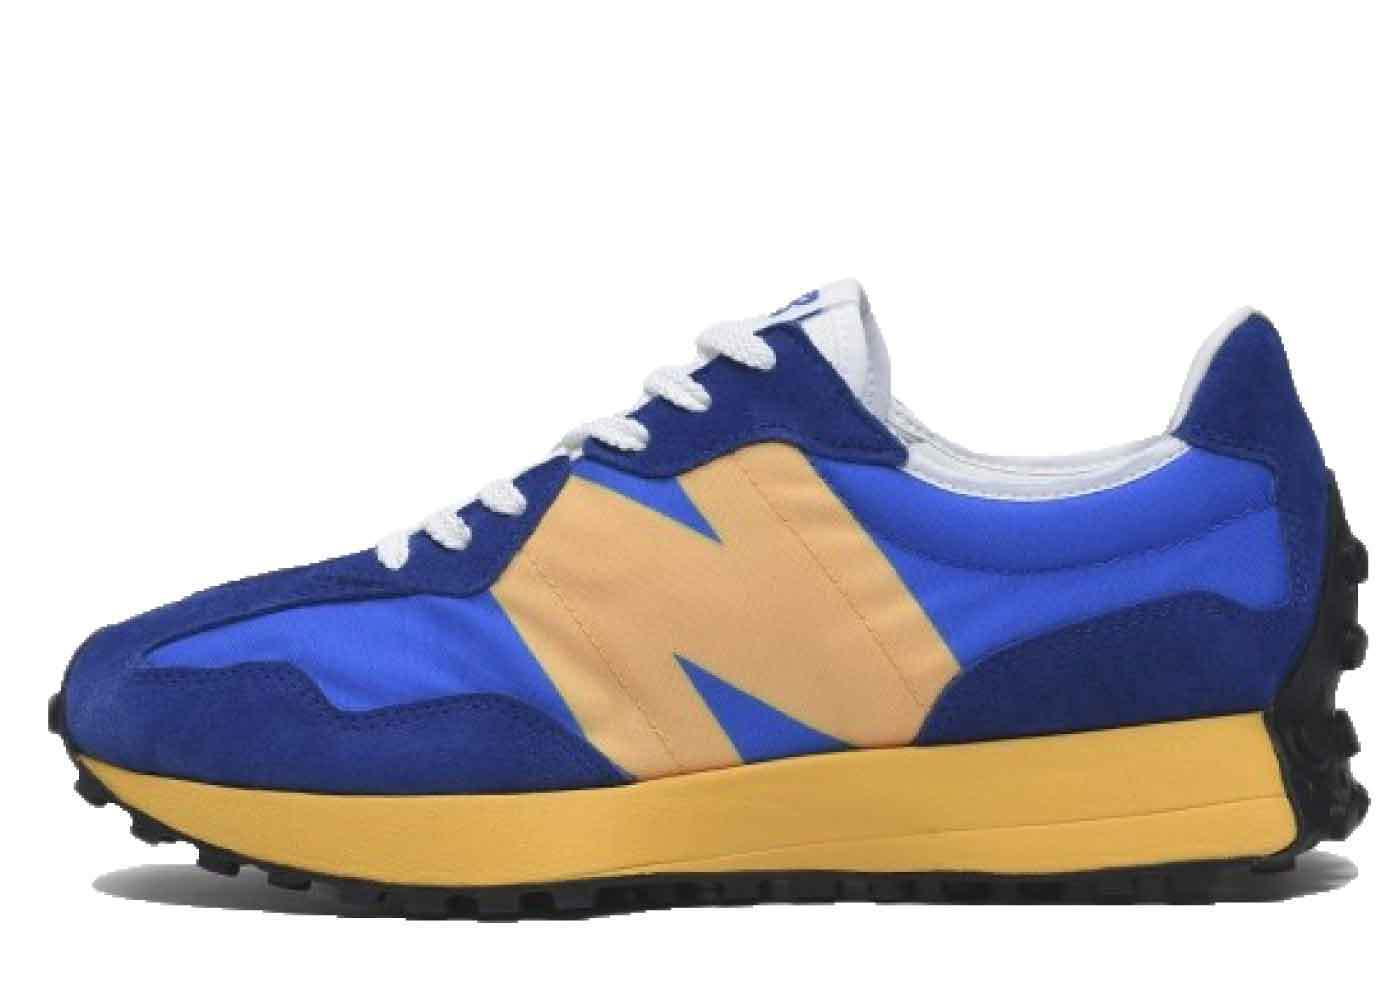 New Balance MS327 LAA Marine Blueの写真